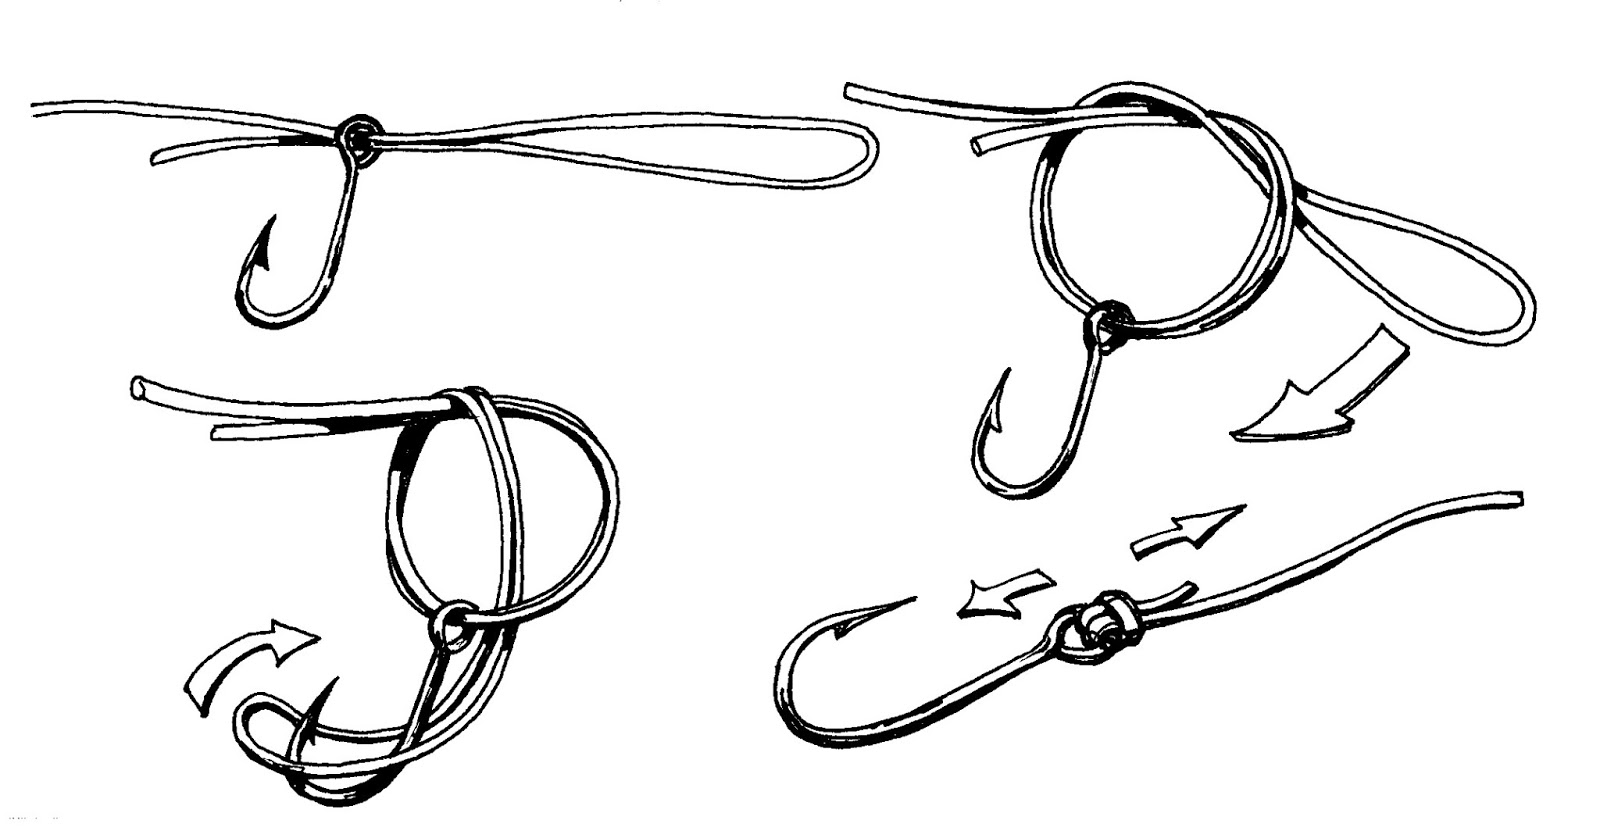 Fishing knots for hooks - photo#7